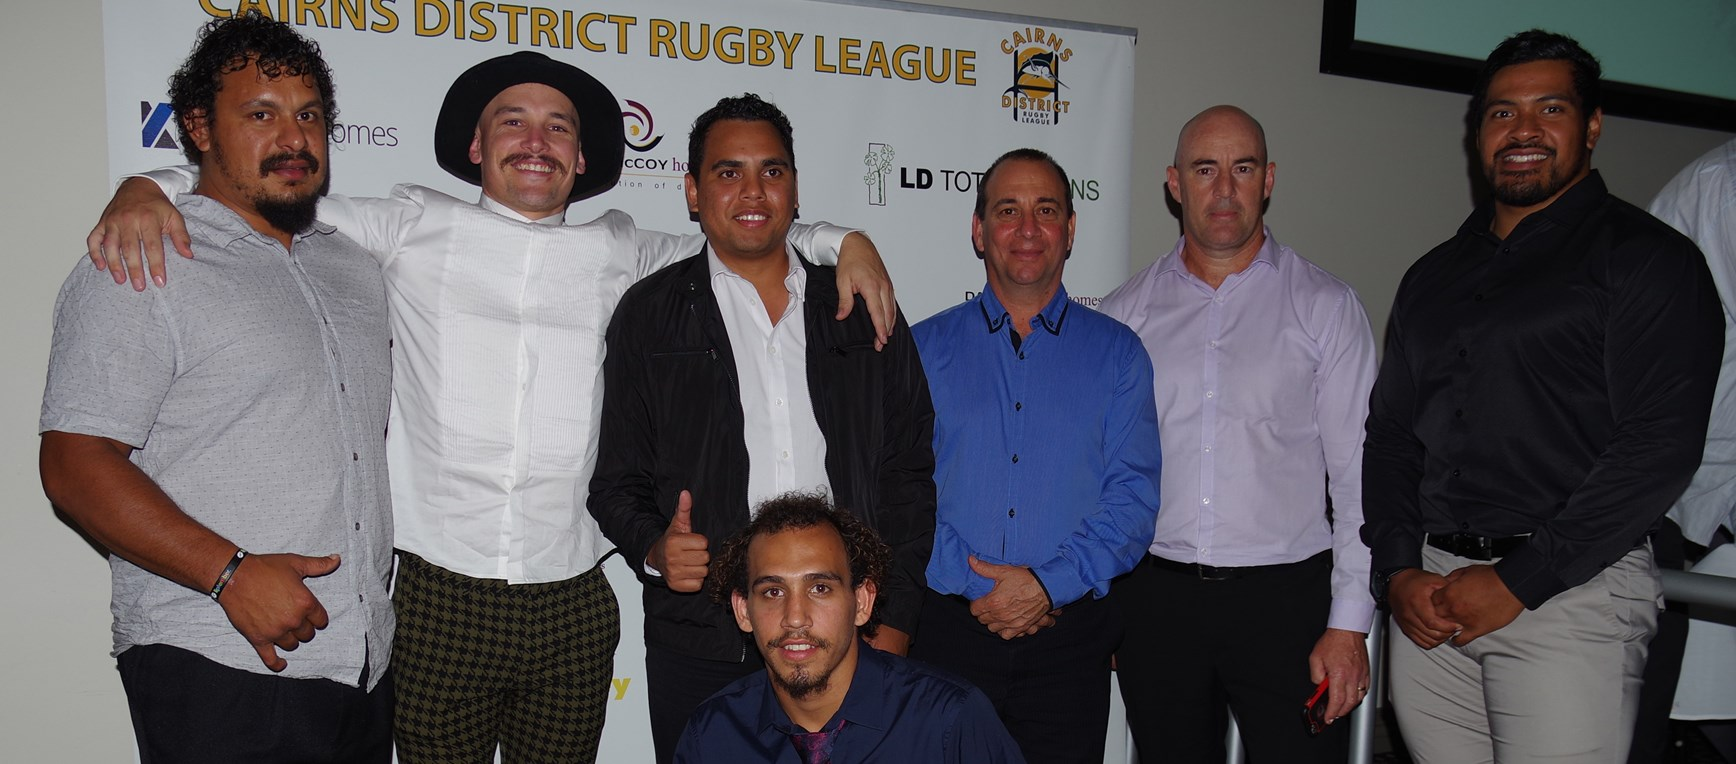 In pictures: Cairns District Rugby League awards